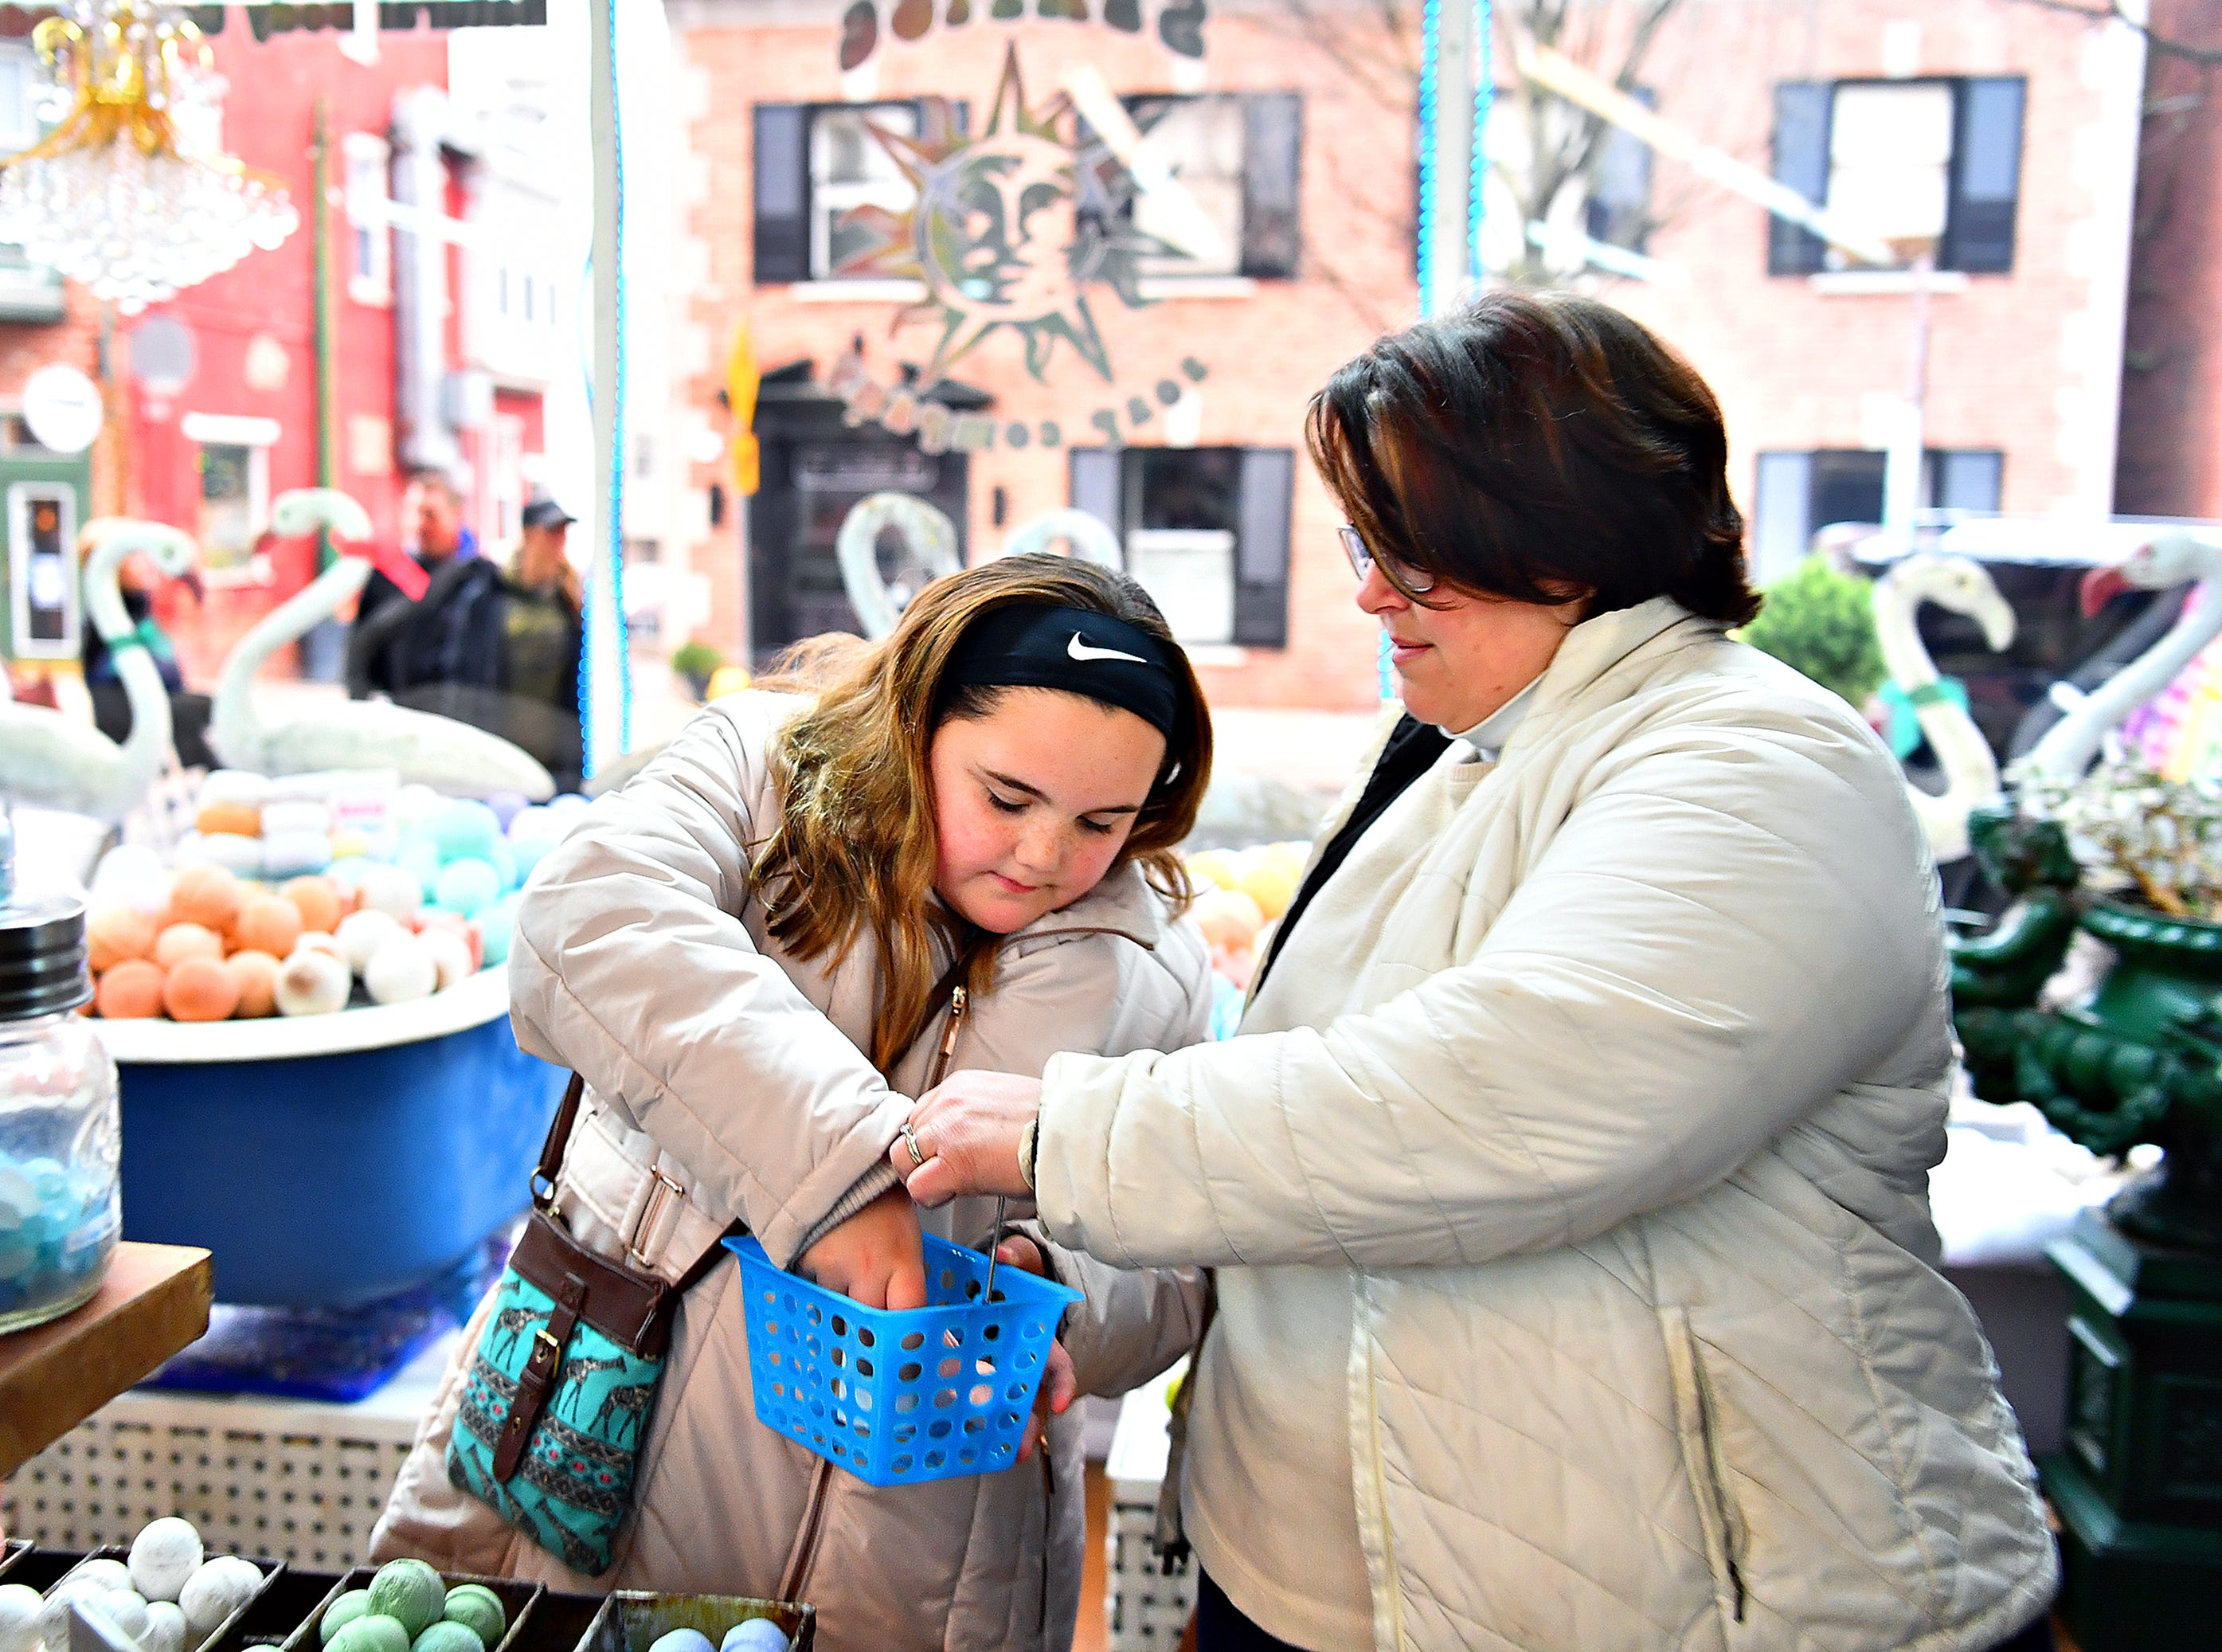 Kathy Harshall, right, and her daughter Avery Harshall, 11, both of Springettsbury Township, shop during Small Business Saturday at Sunrise Soap Co. in York City, Saturday, Nov. 24, 2018. Dawn J. Sagert photo